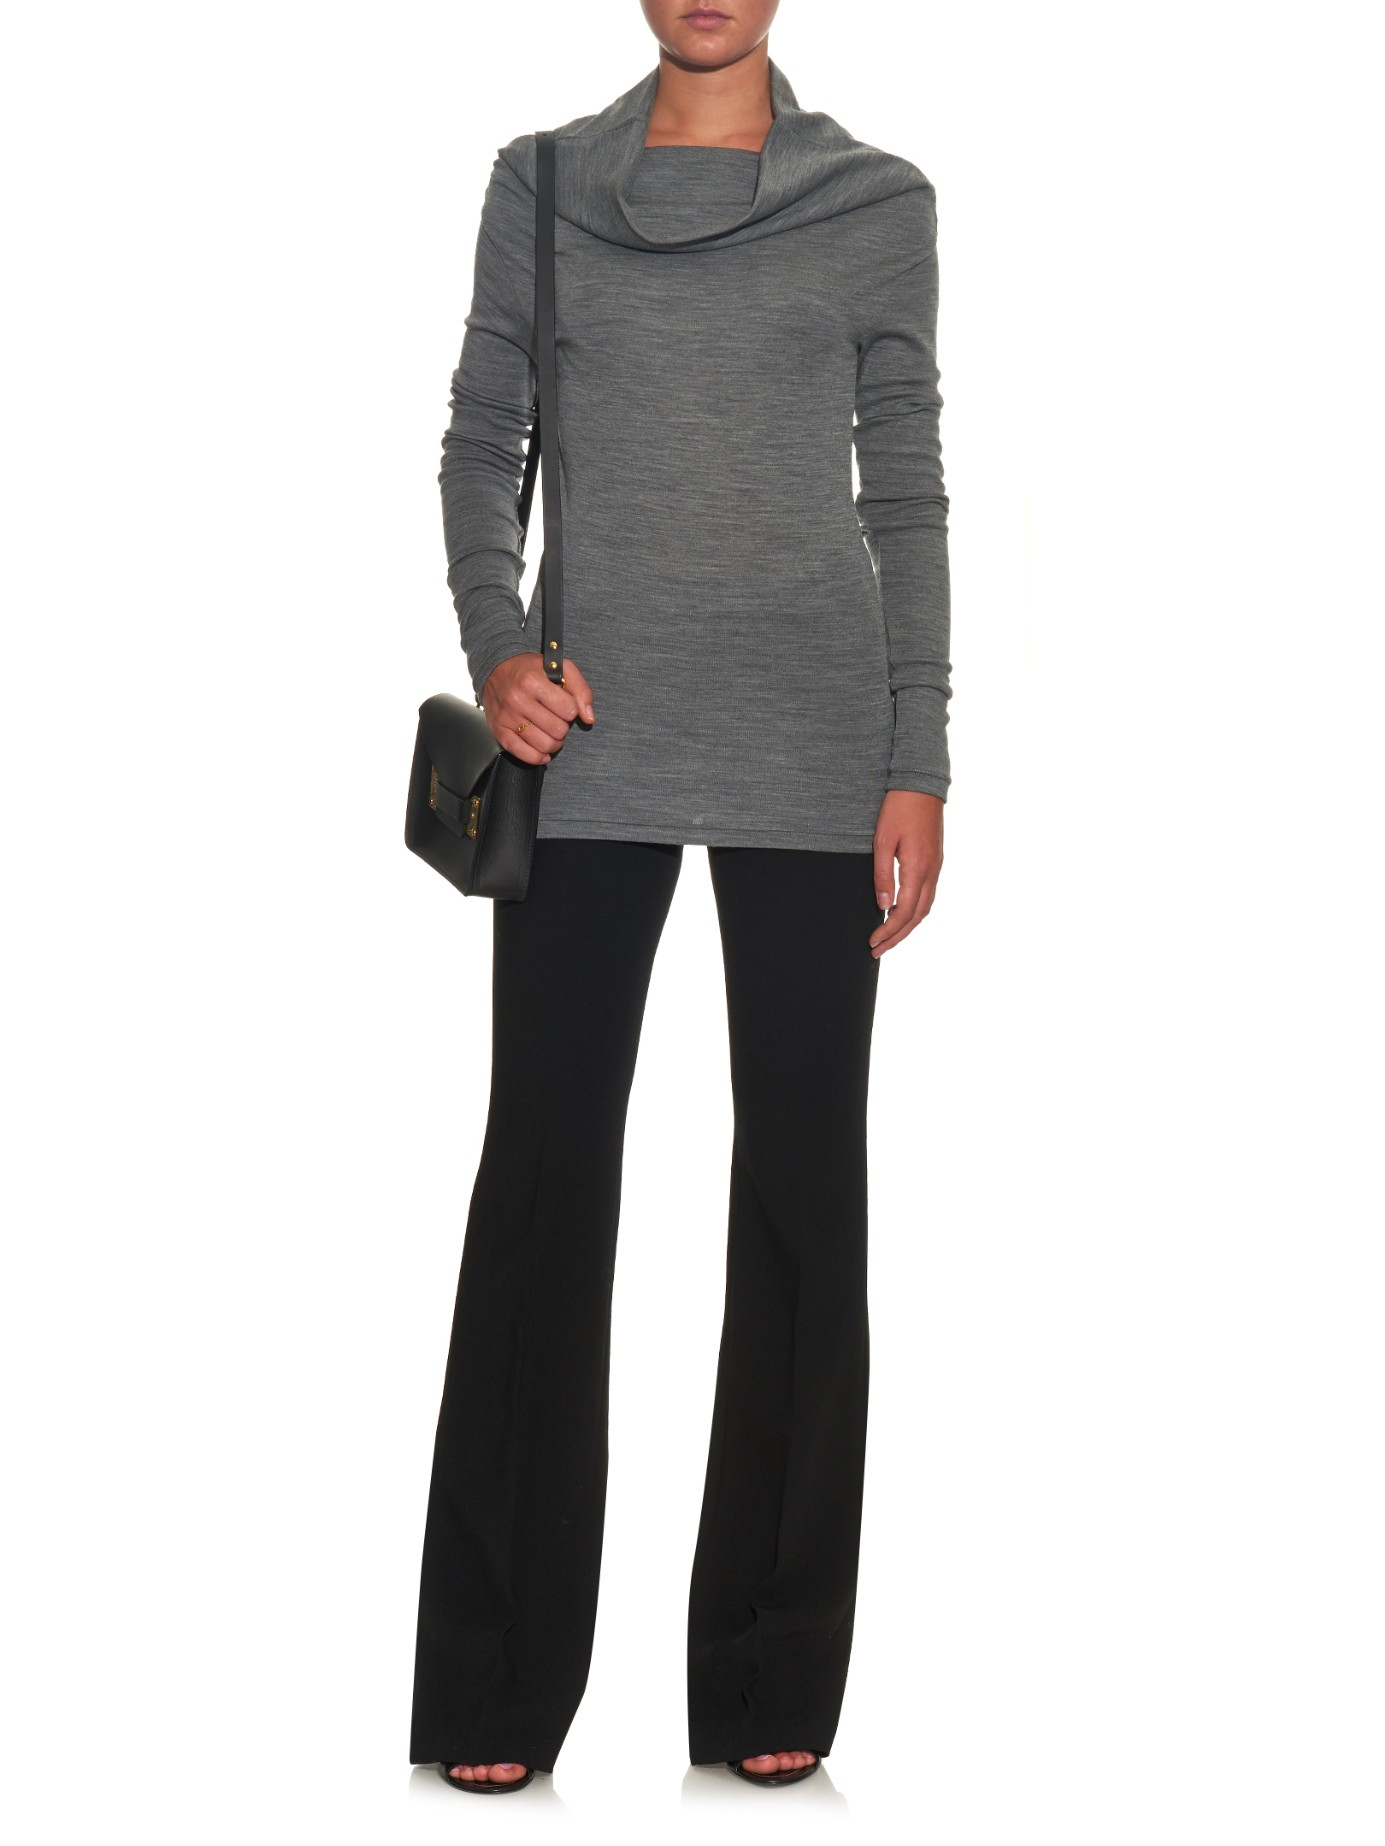 The Olive + Oak Reese Dark Heather Grey Cowl Neck Sweater Top is sure to be your cup of tea on a chilly day! Super soft ribbed knit shapes this essential sweater top with a slouchy, cowl neck, drop shoulders, and long sleeves with banded cuffs.